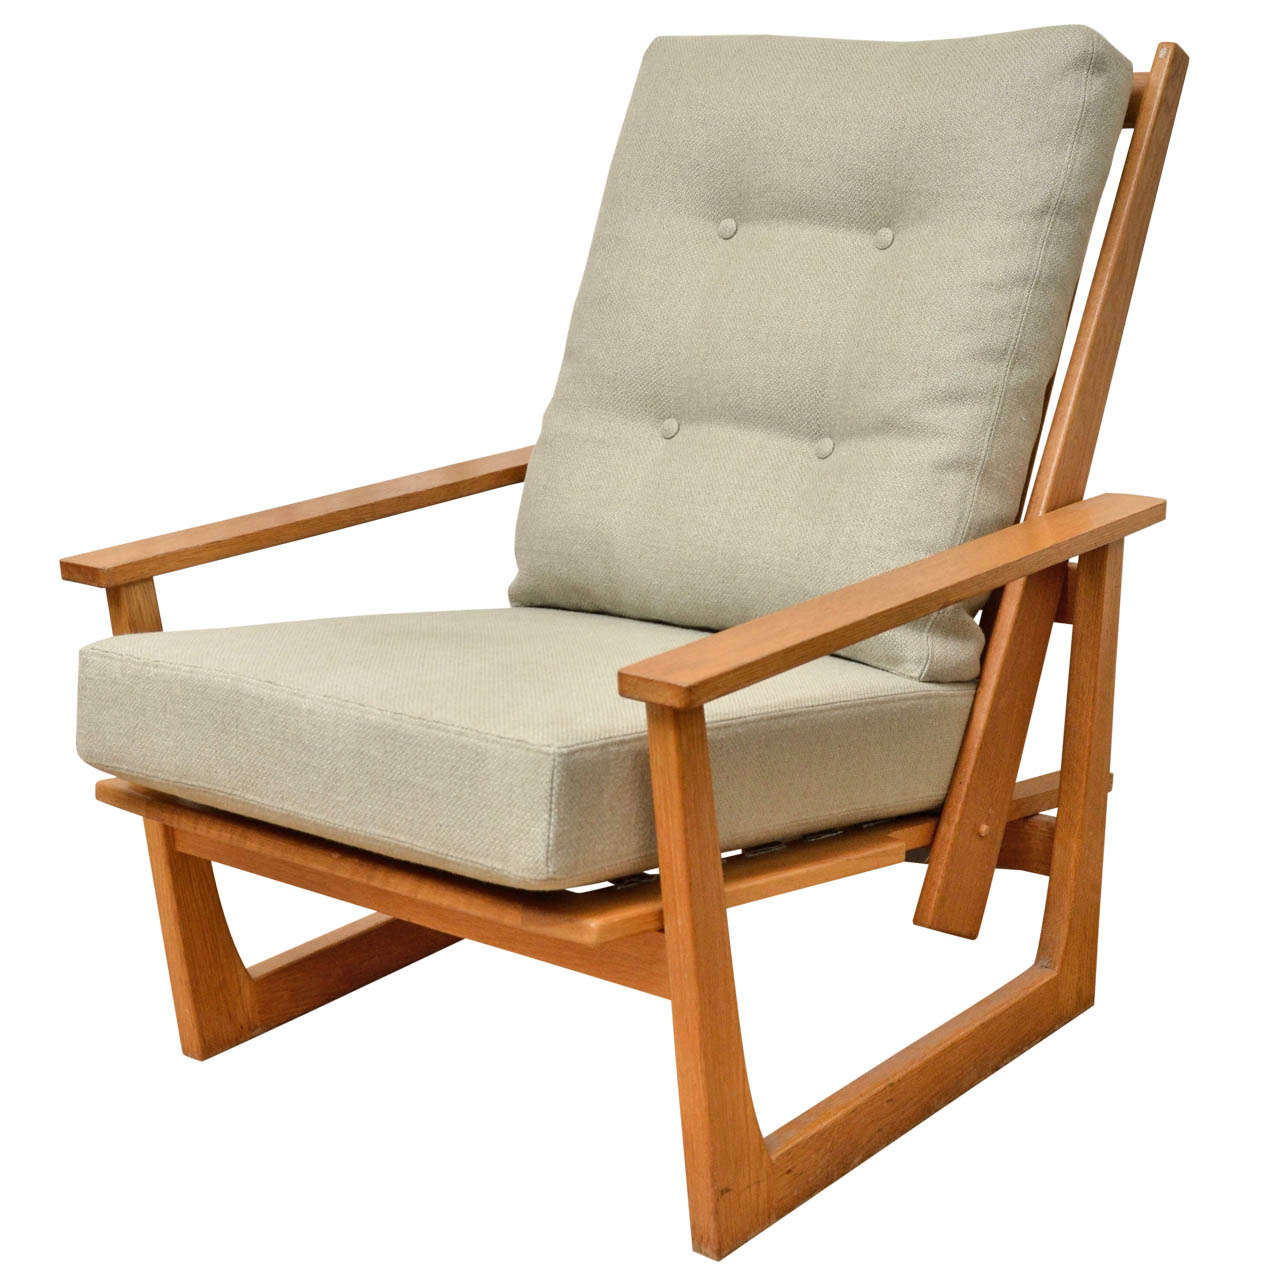 Reclining Lounge Chair Reclining Wooden Lounge Chair At 1stdibs